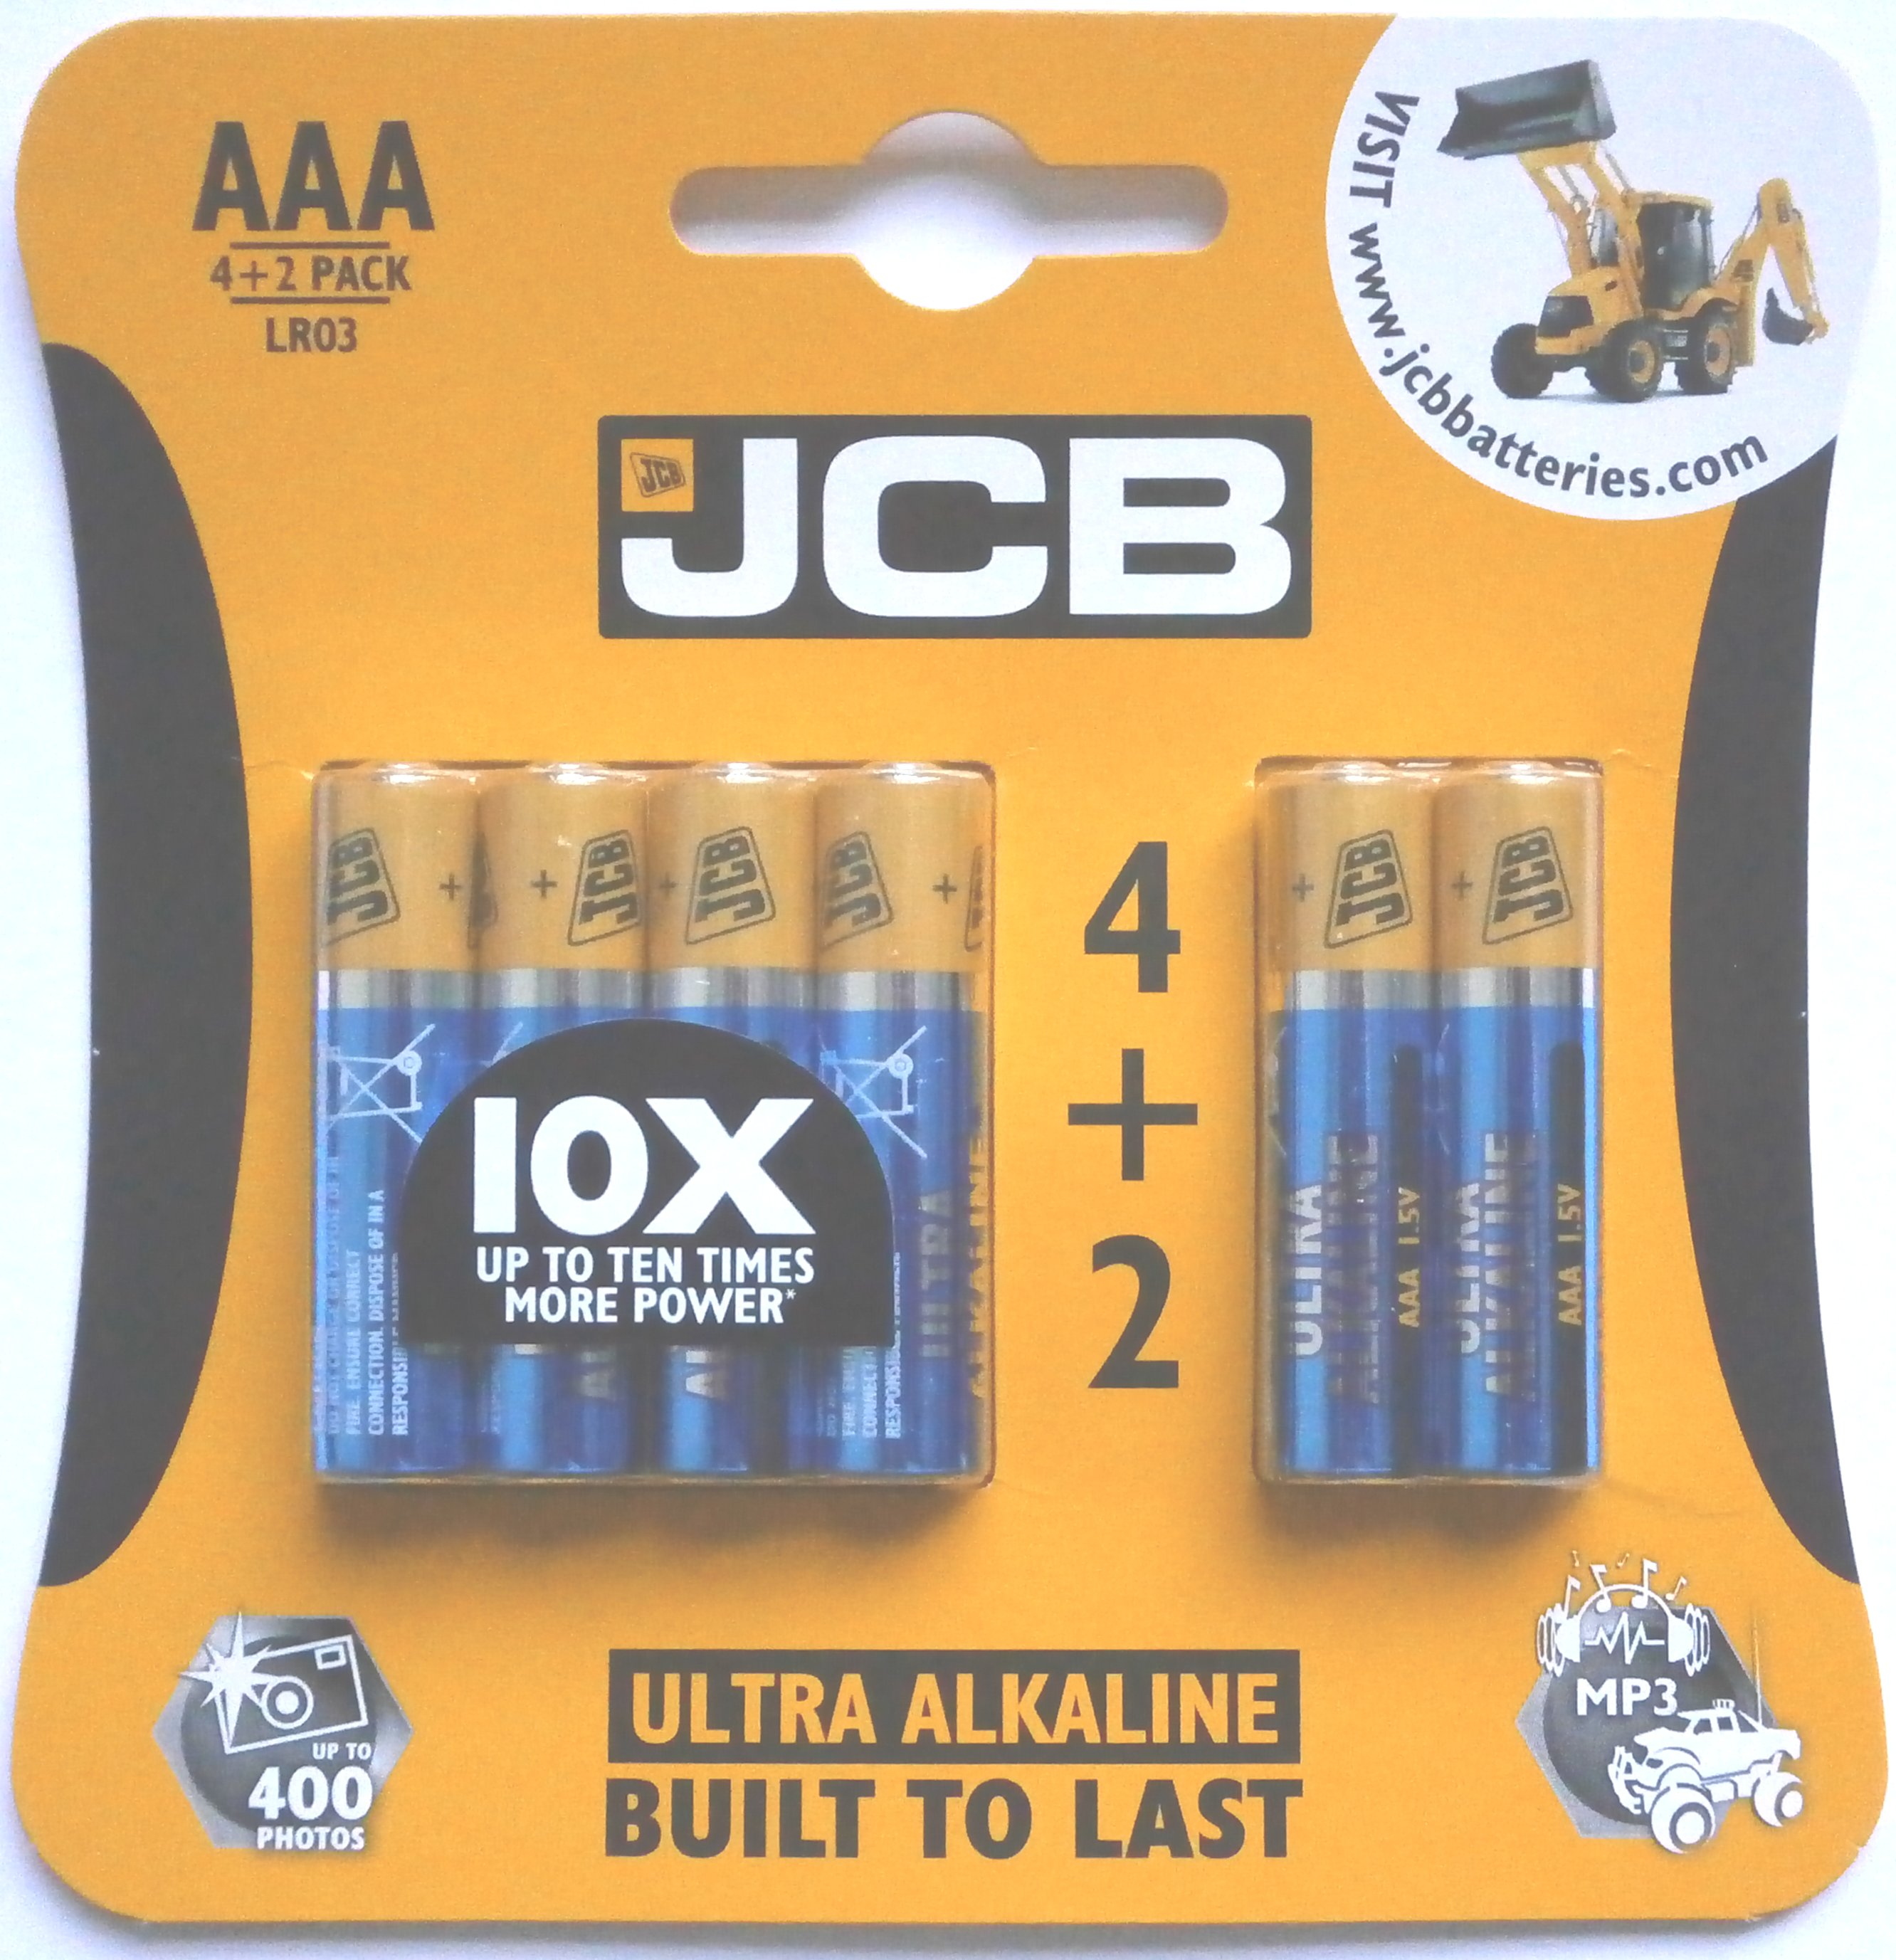 4+2 Pack of JCB Ultra Alkaline 1.5 Volt AAA Batteries